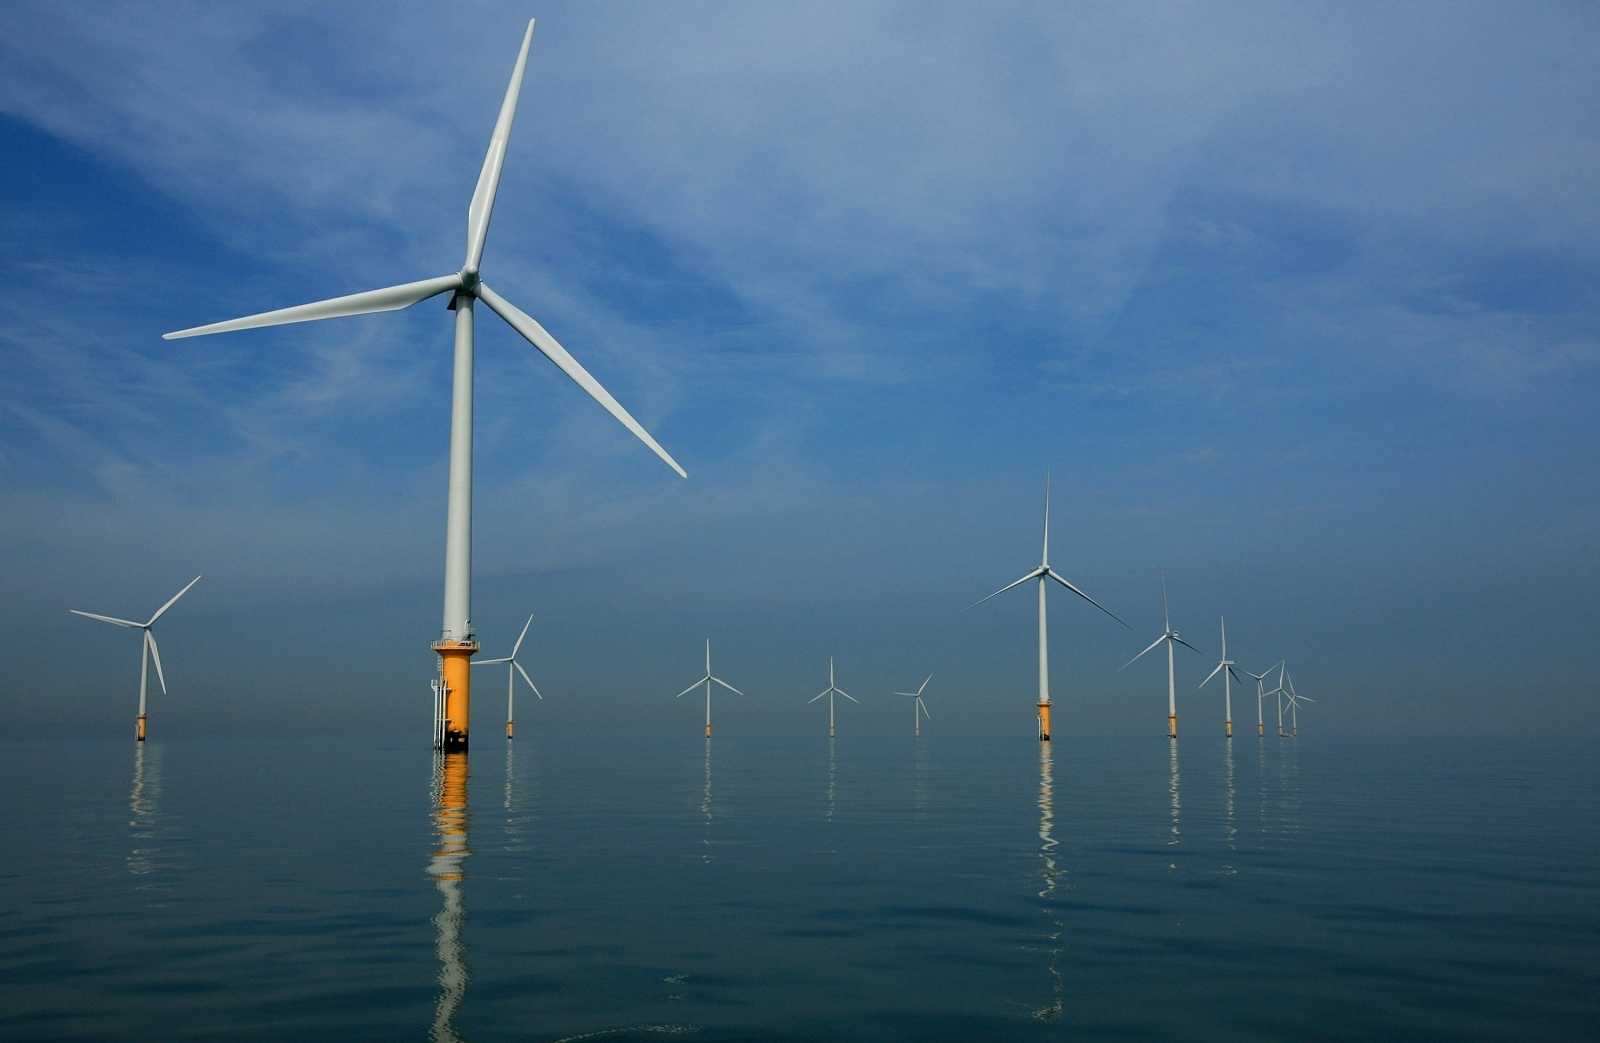 world's first floating offshore wind farm Hywind